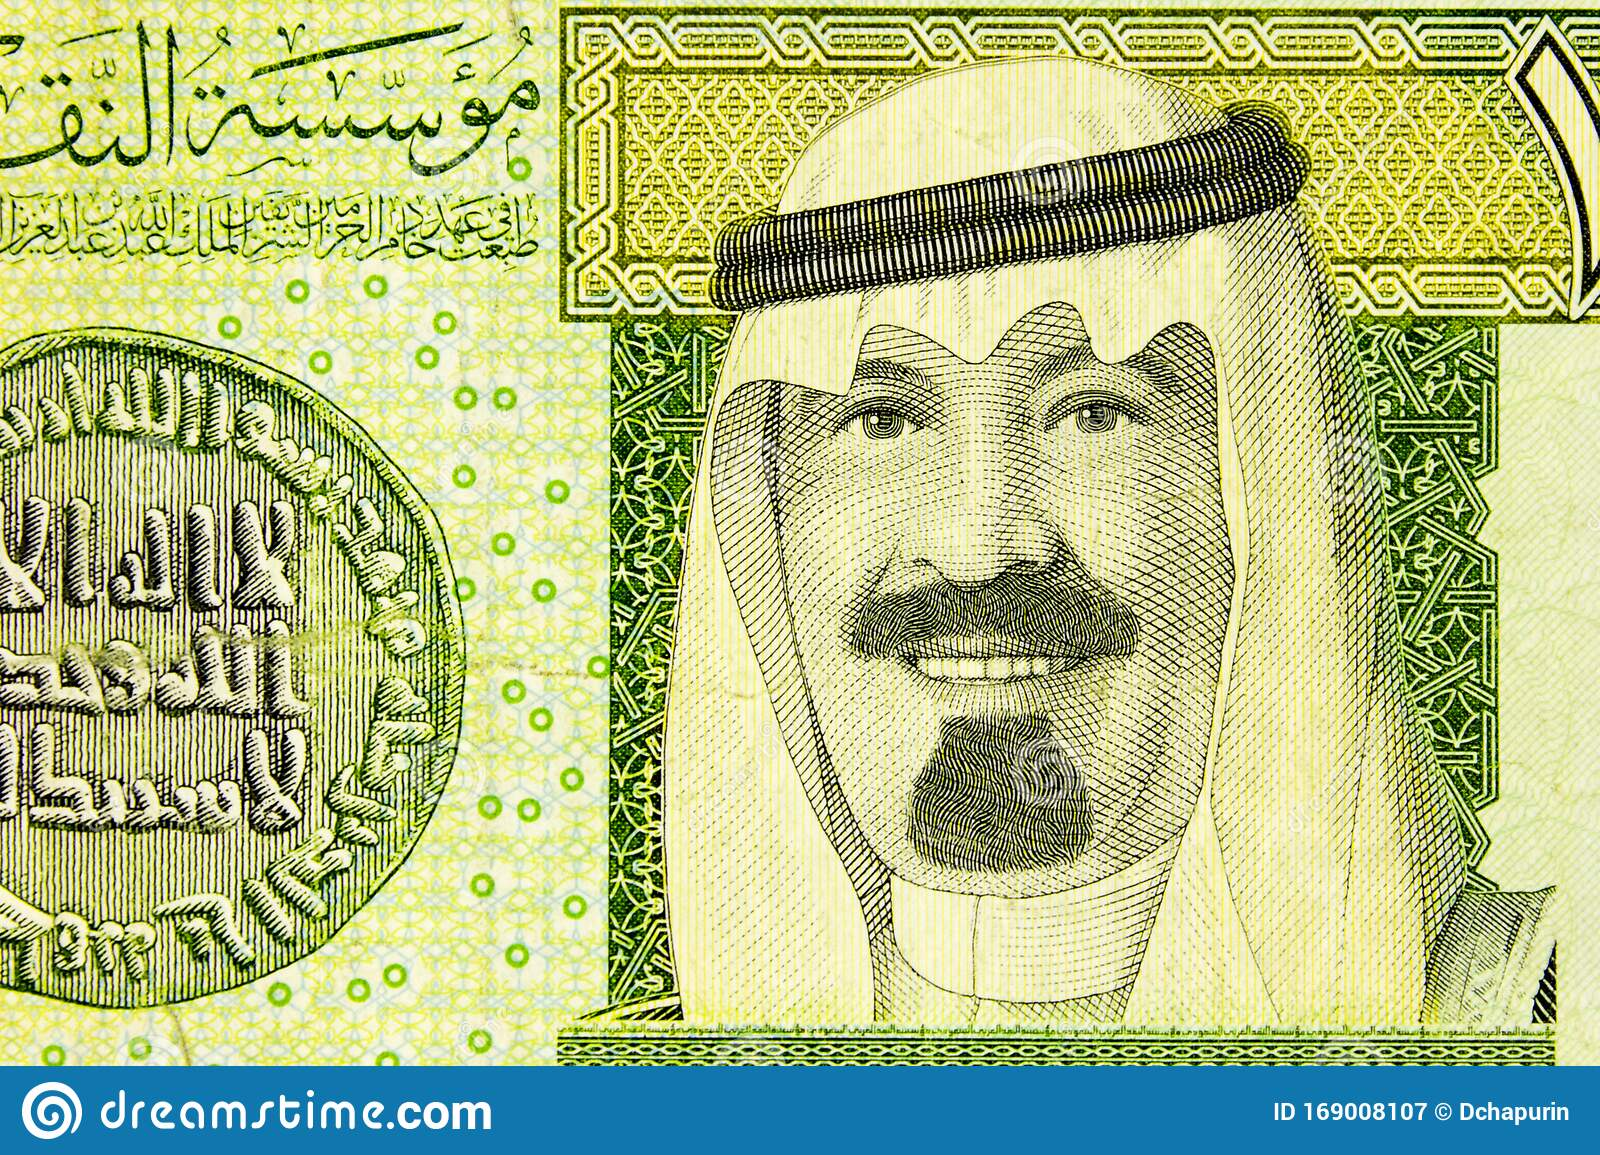 1 403 Saudi Arabia Currency Photos Free Royalty Free Stock Photos From Dreamstime